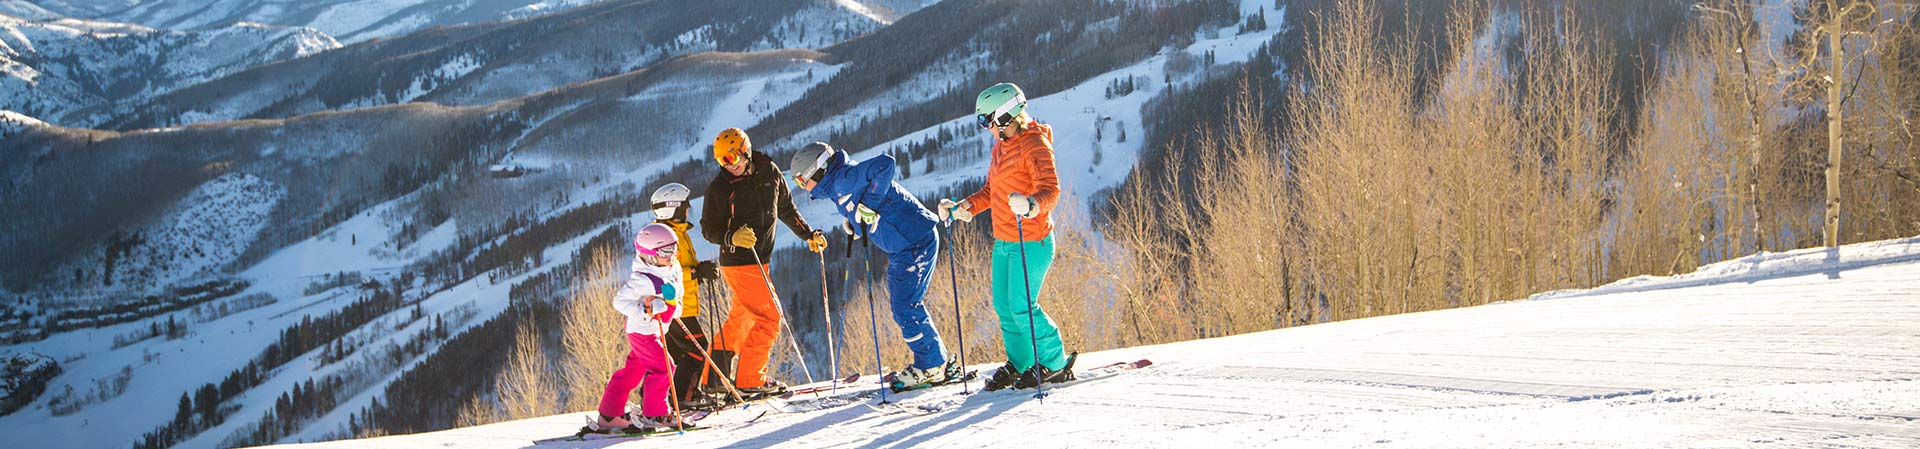 Family skis with instructor at Beaver Creek Resort, 1920x450